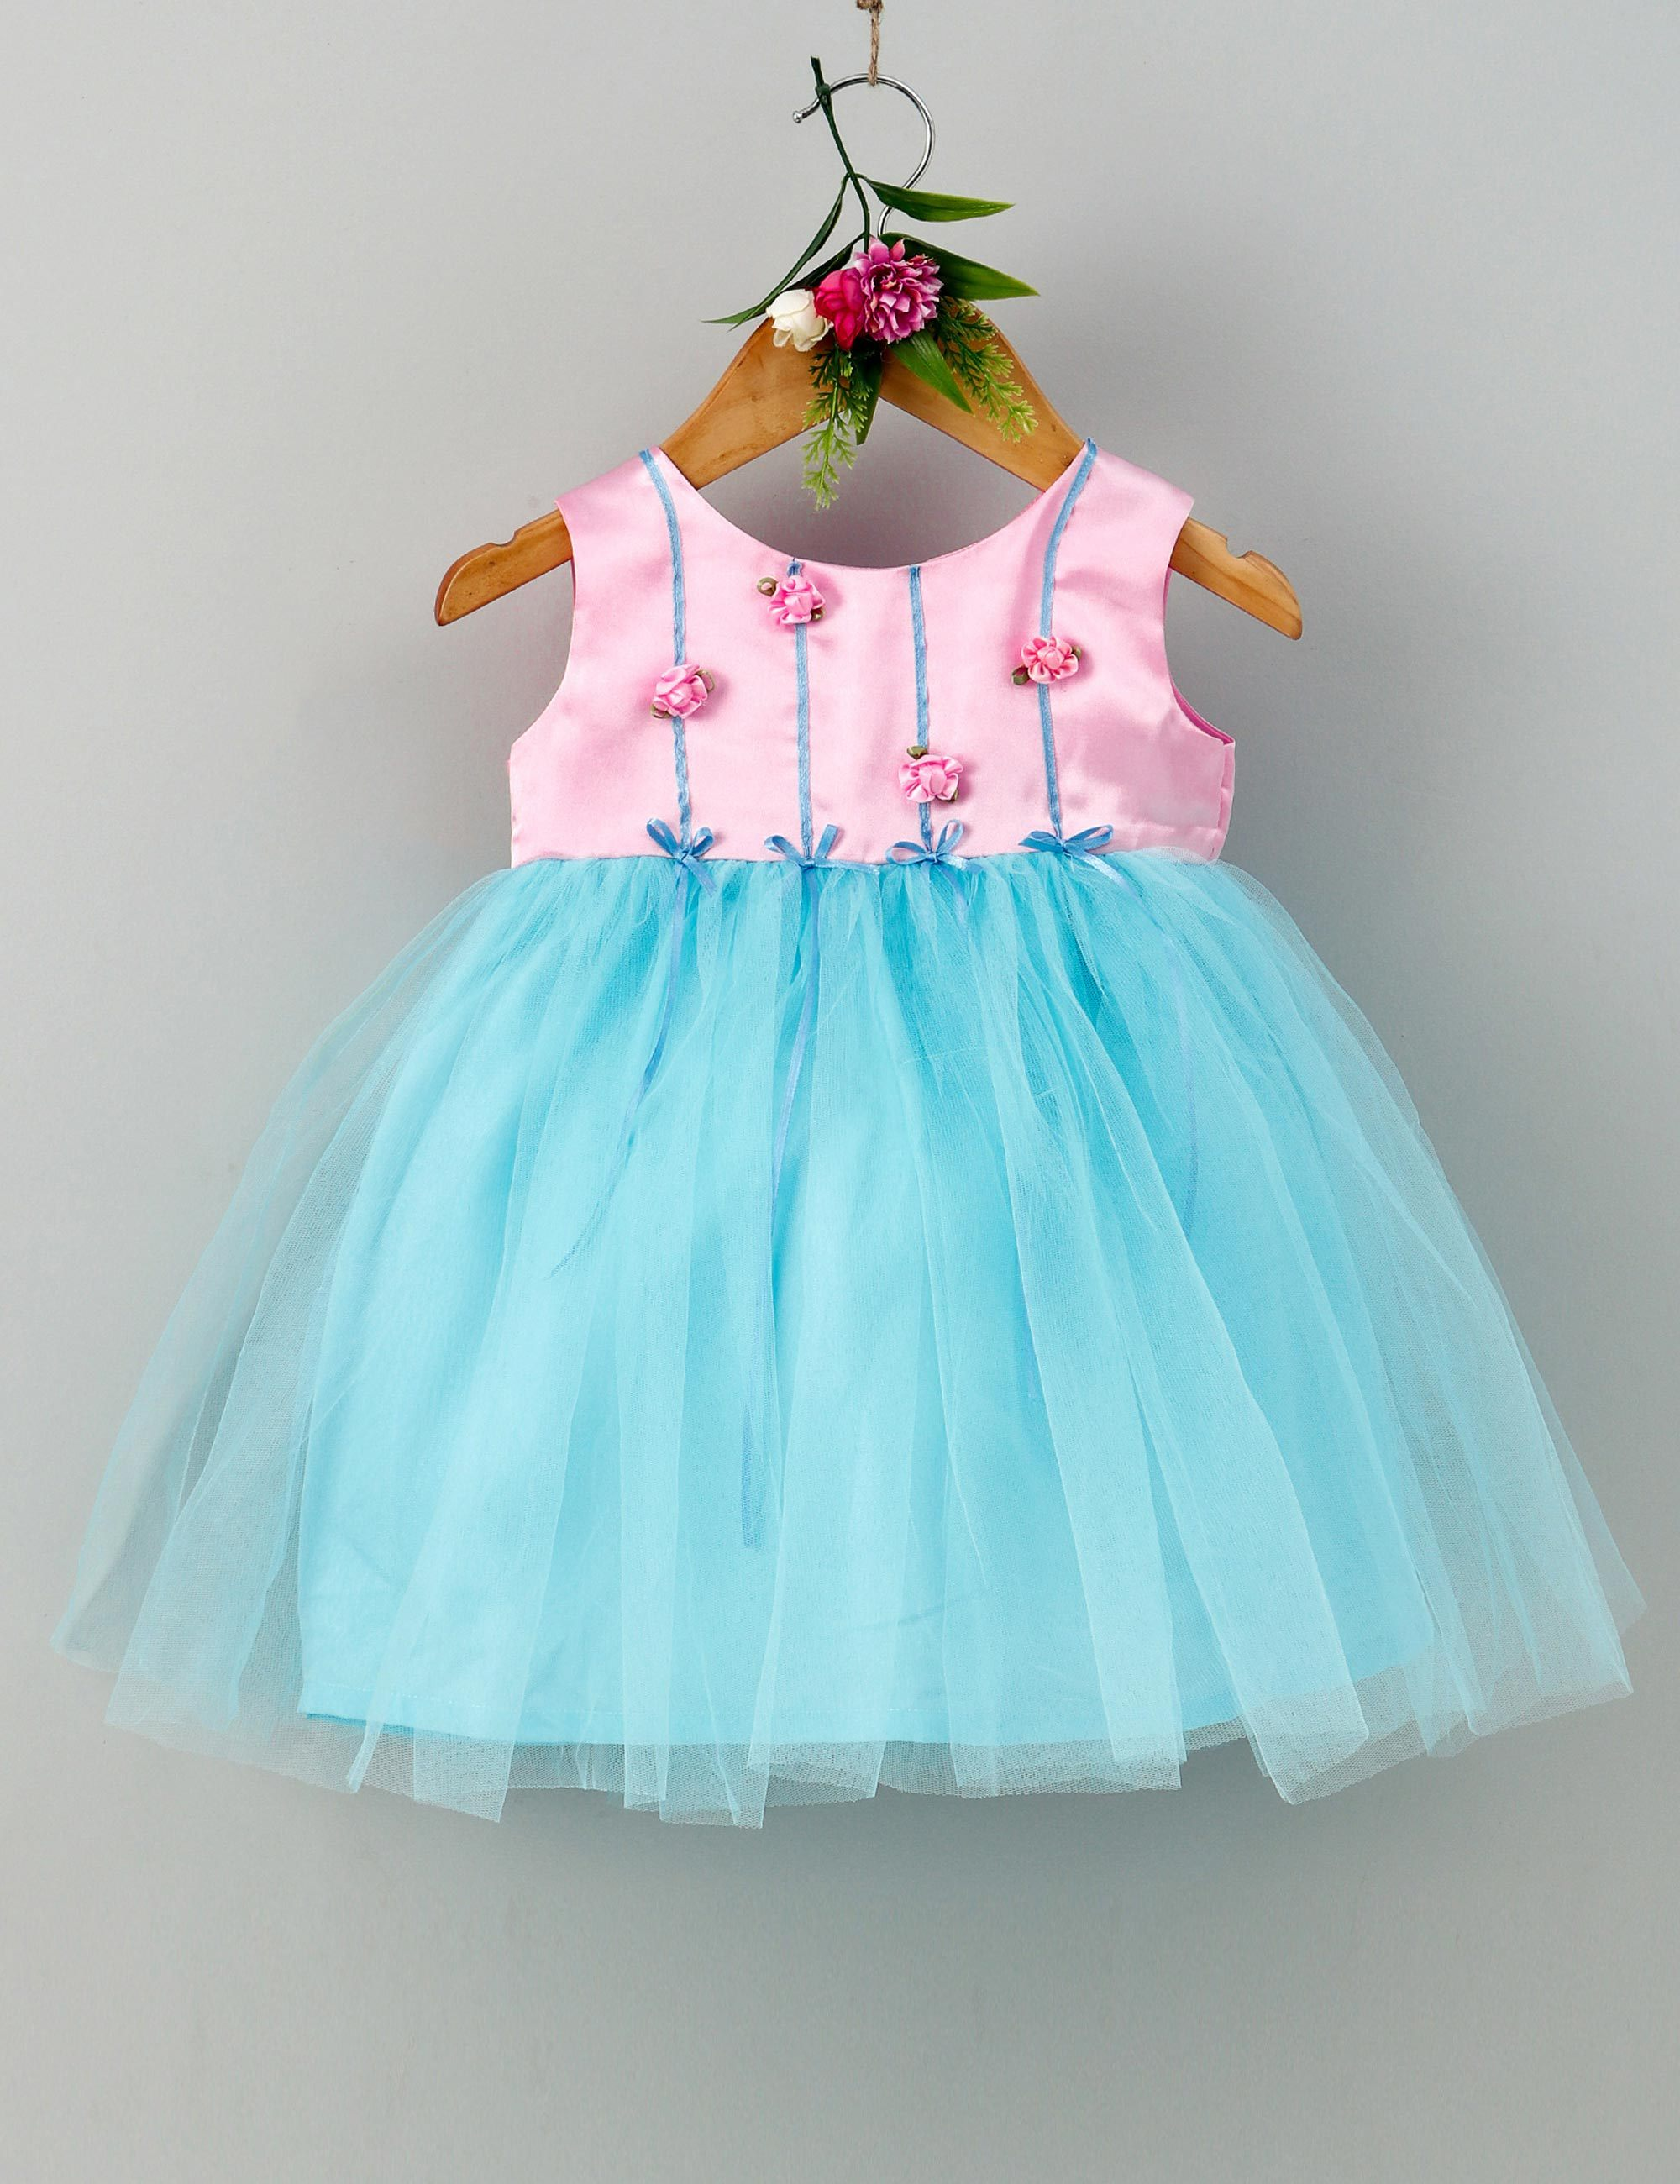 Rose garden sleeveless baby party frock-Pink and Blue